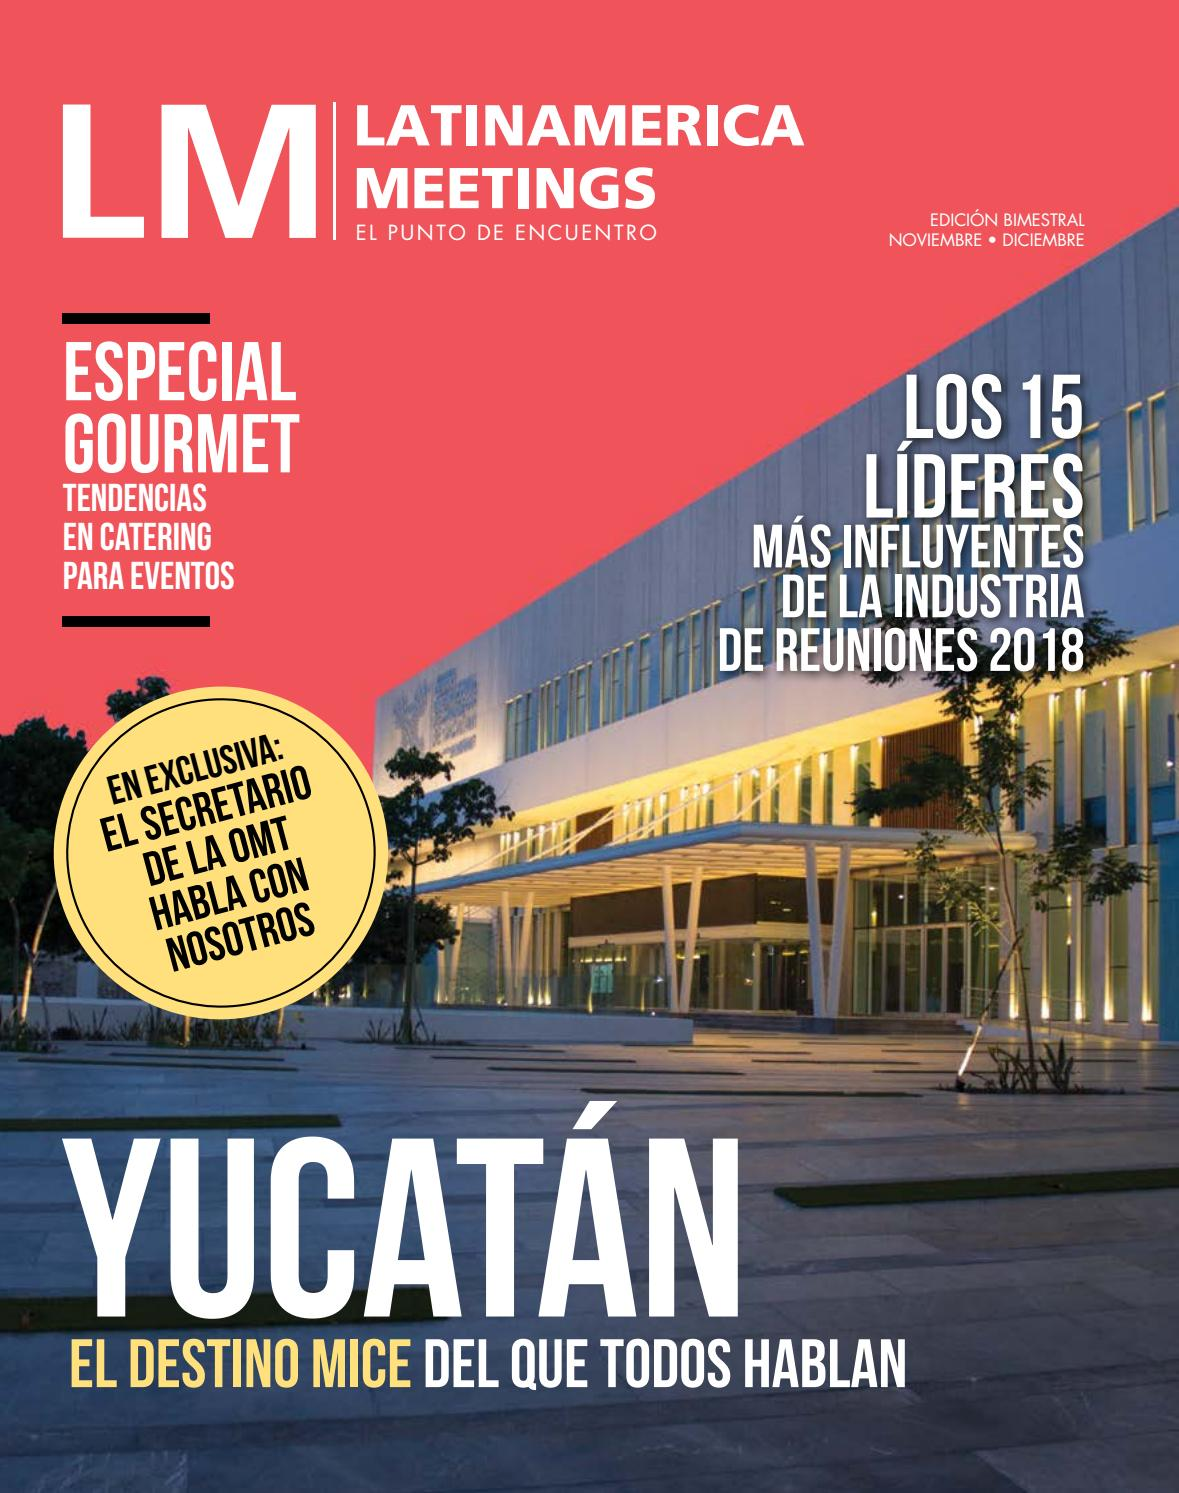 Lm Latinamerica Meetings 12 By Latinamerica Meetings Issuu